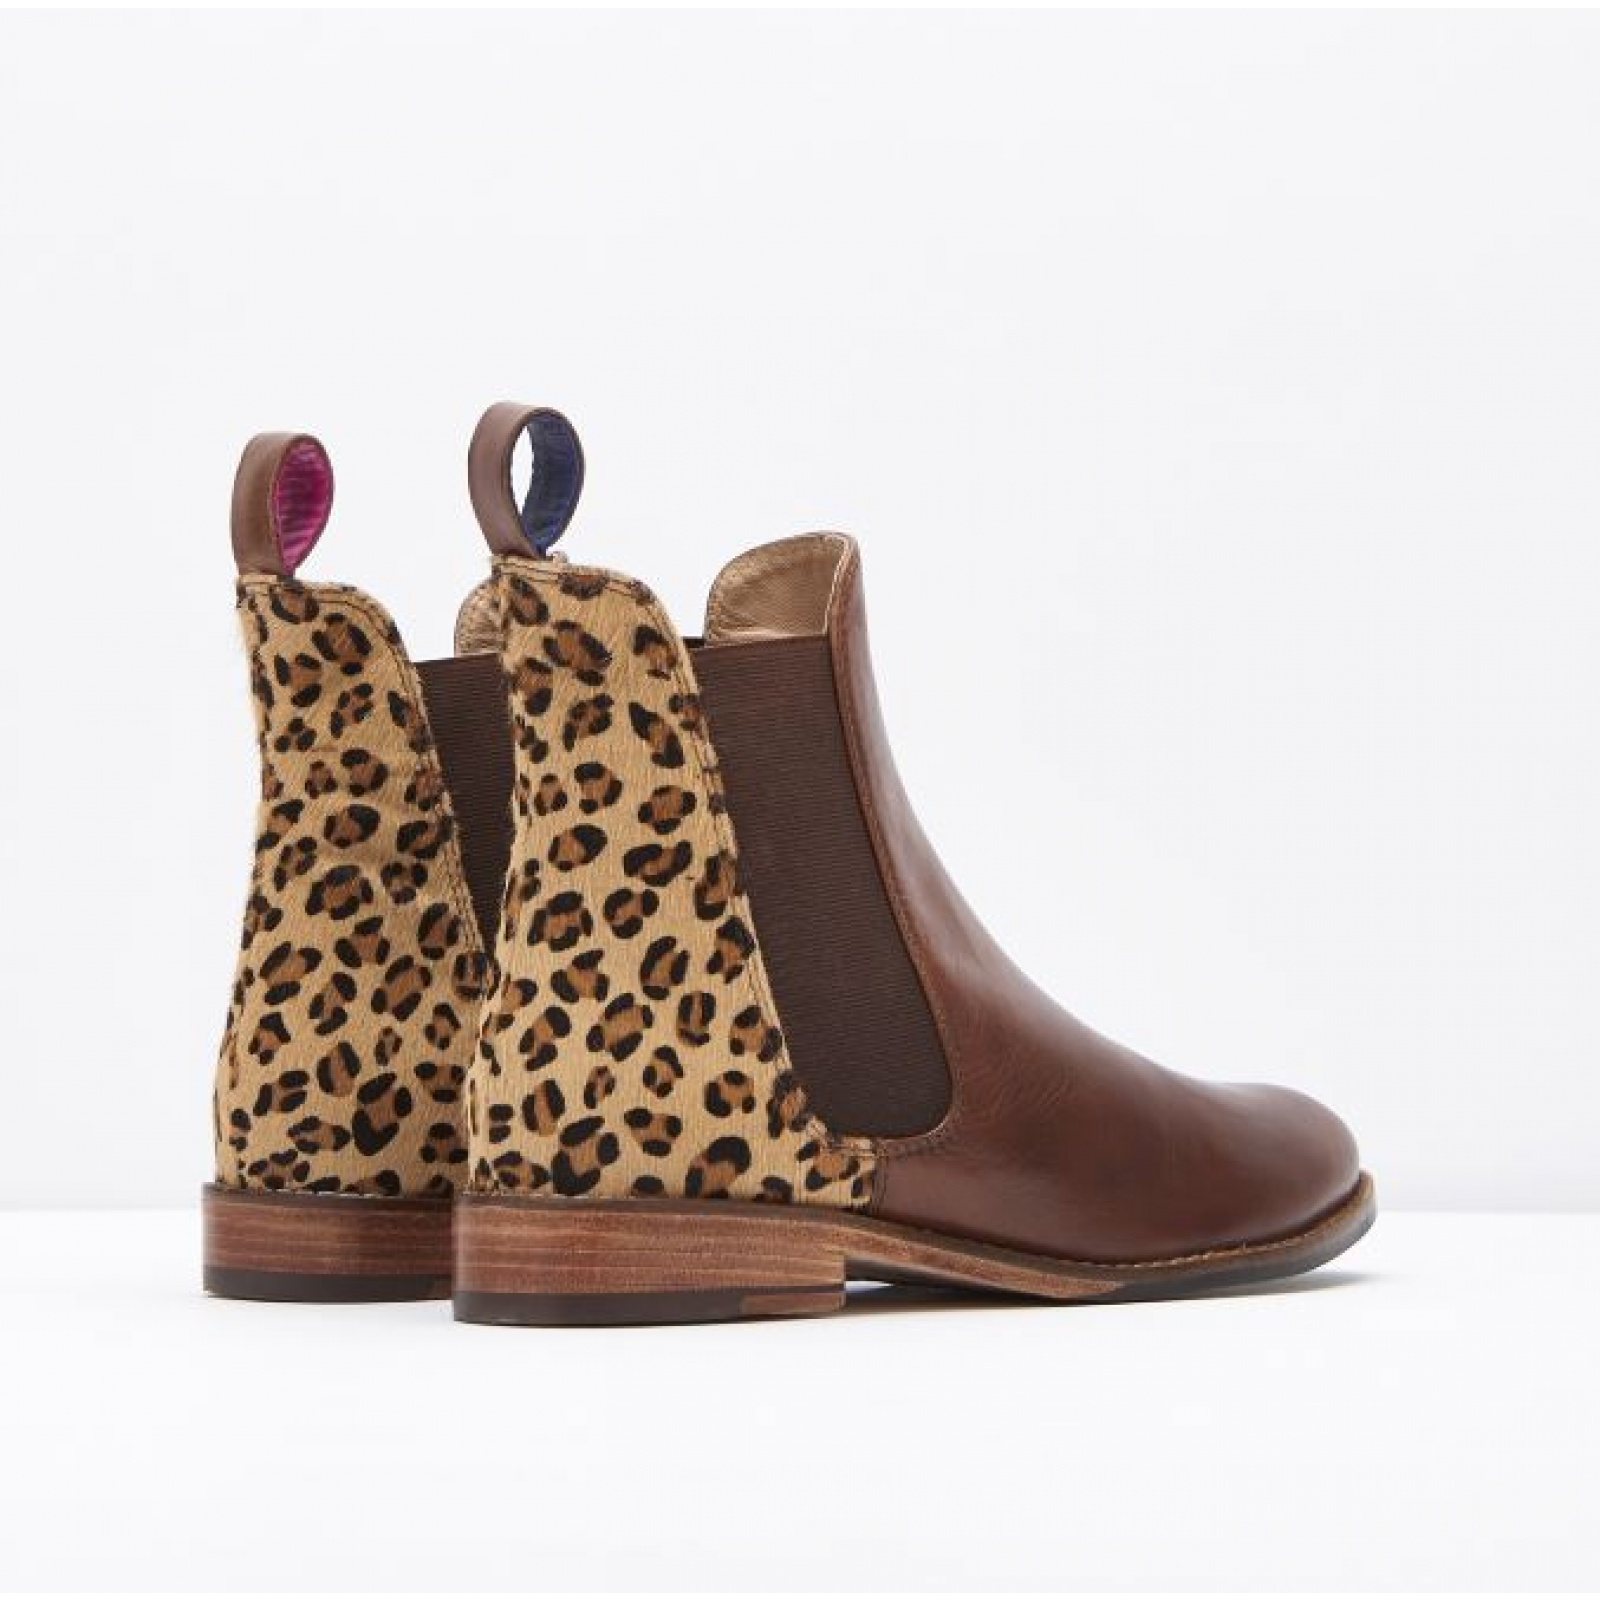 Joules-Westbourne-Premium-Leather-Chelsea-Boot-ALL-COLOURS miniature 9